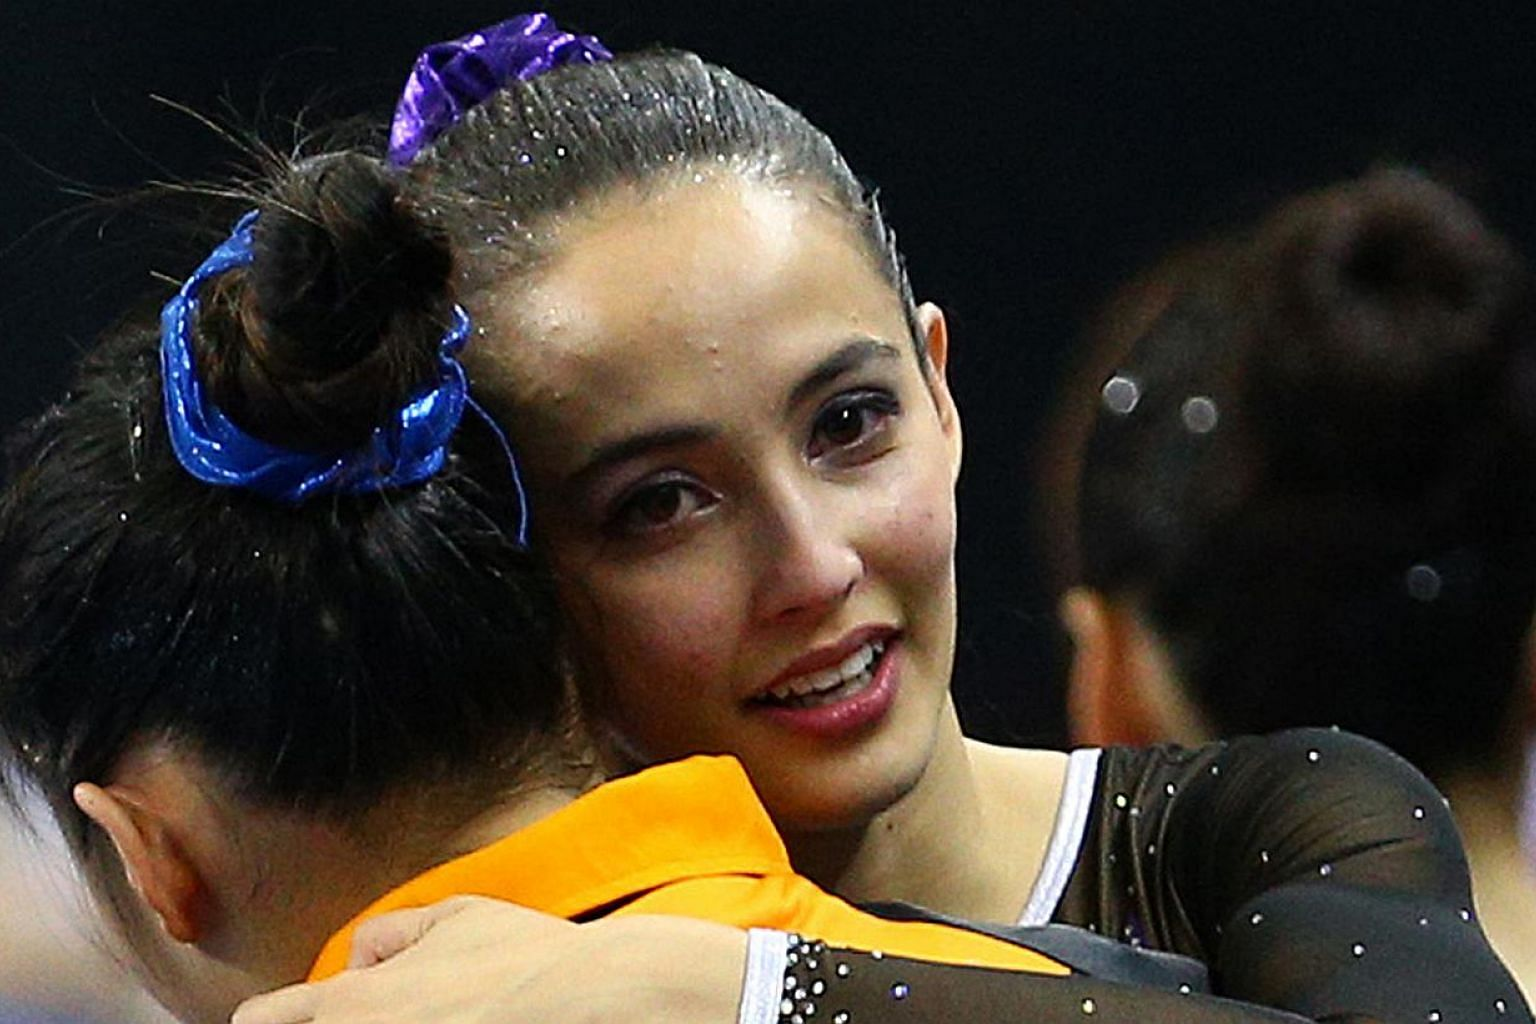 Malaysian gymnast Farah Ann Abdul Hadi (right) recently came under fire from netizens who criticised her competition attire during the SEA Games in Singapore. -- PHOTO: SINGAPORE SEA GAMES ORGANISING COMMITTEE/ACTION IMAGES VIA REUTERS